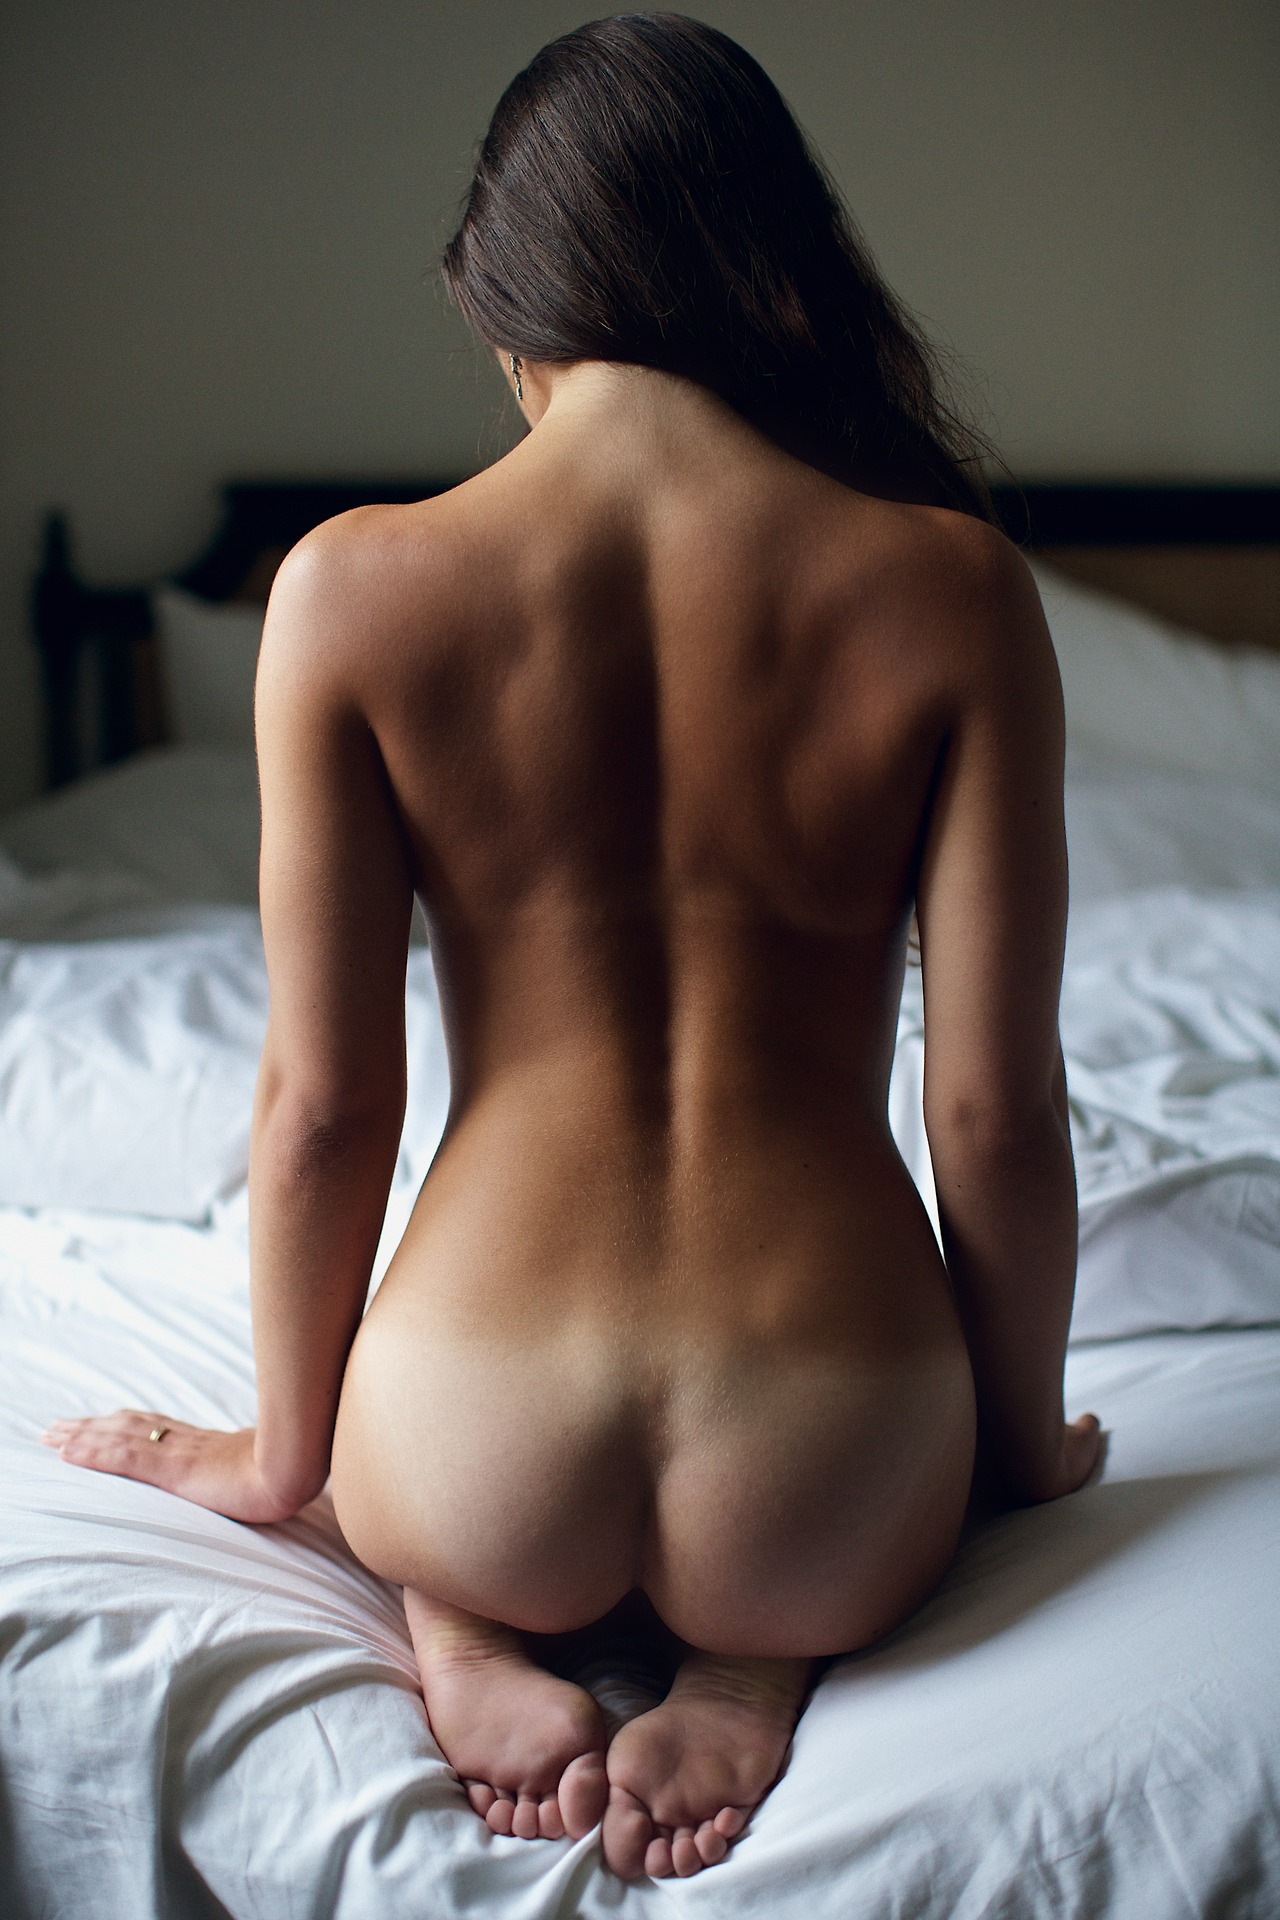 Porn wallpapers butt ass girl blonde nude body naked back